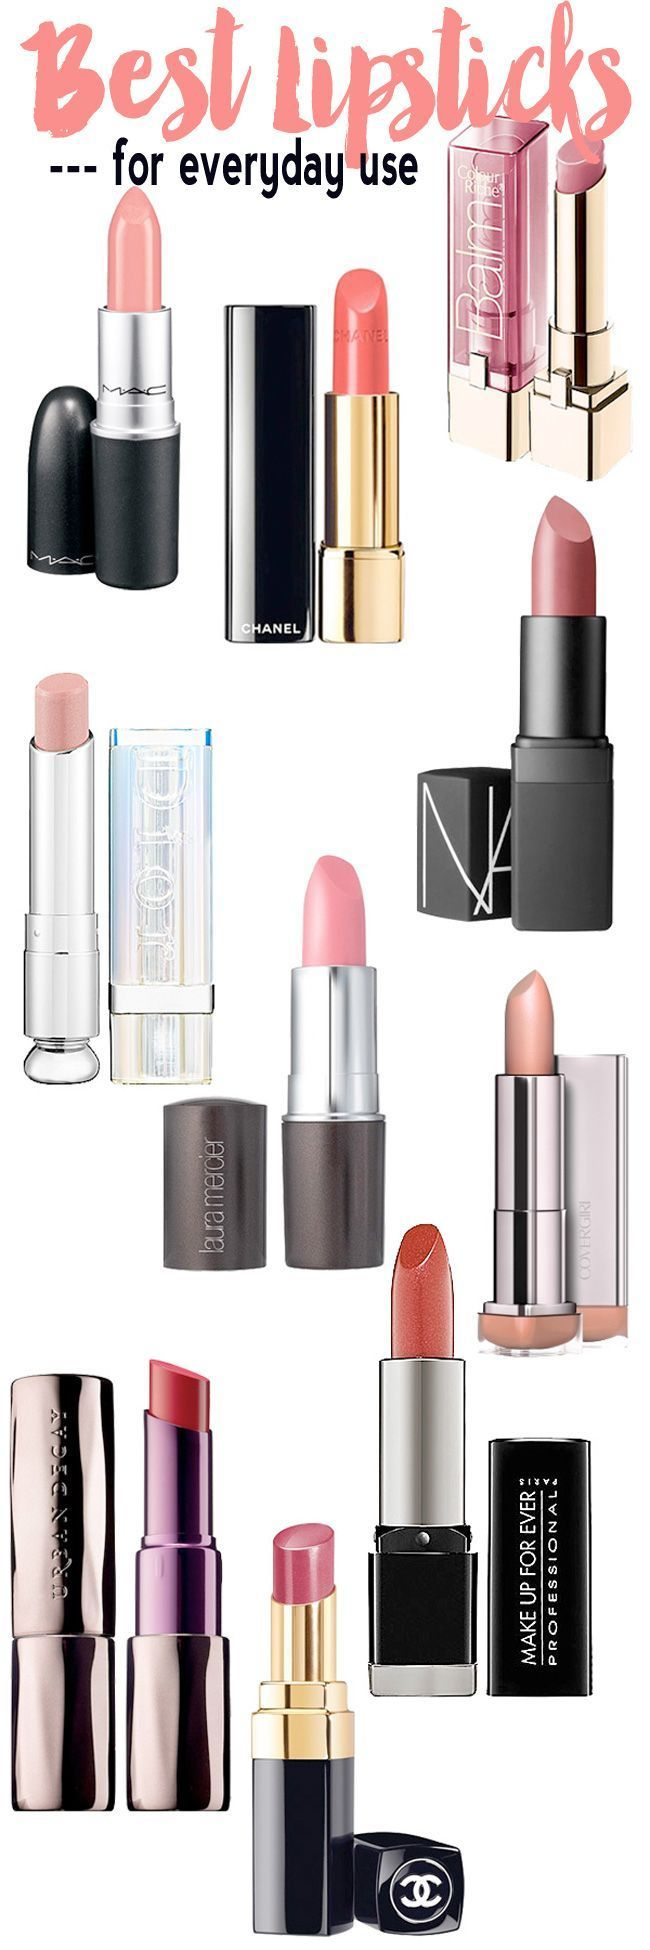 Makeup Bag Musts: The best lipsticks to add to your collection for everyday use.